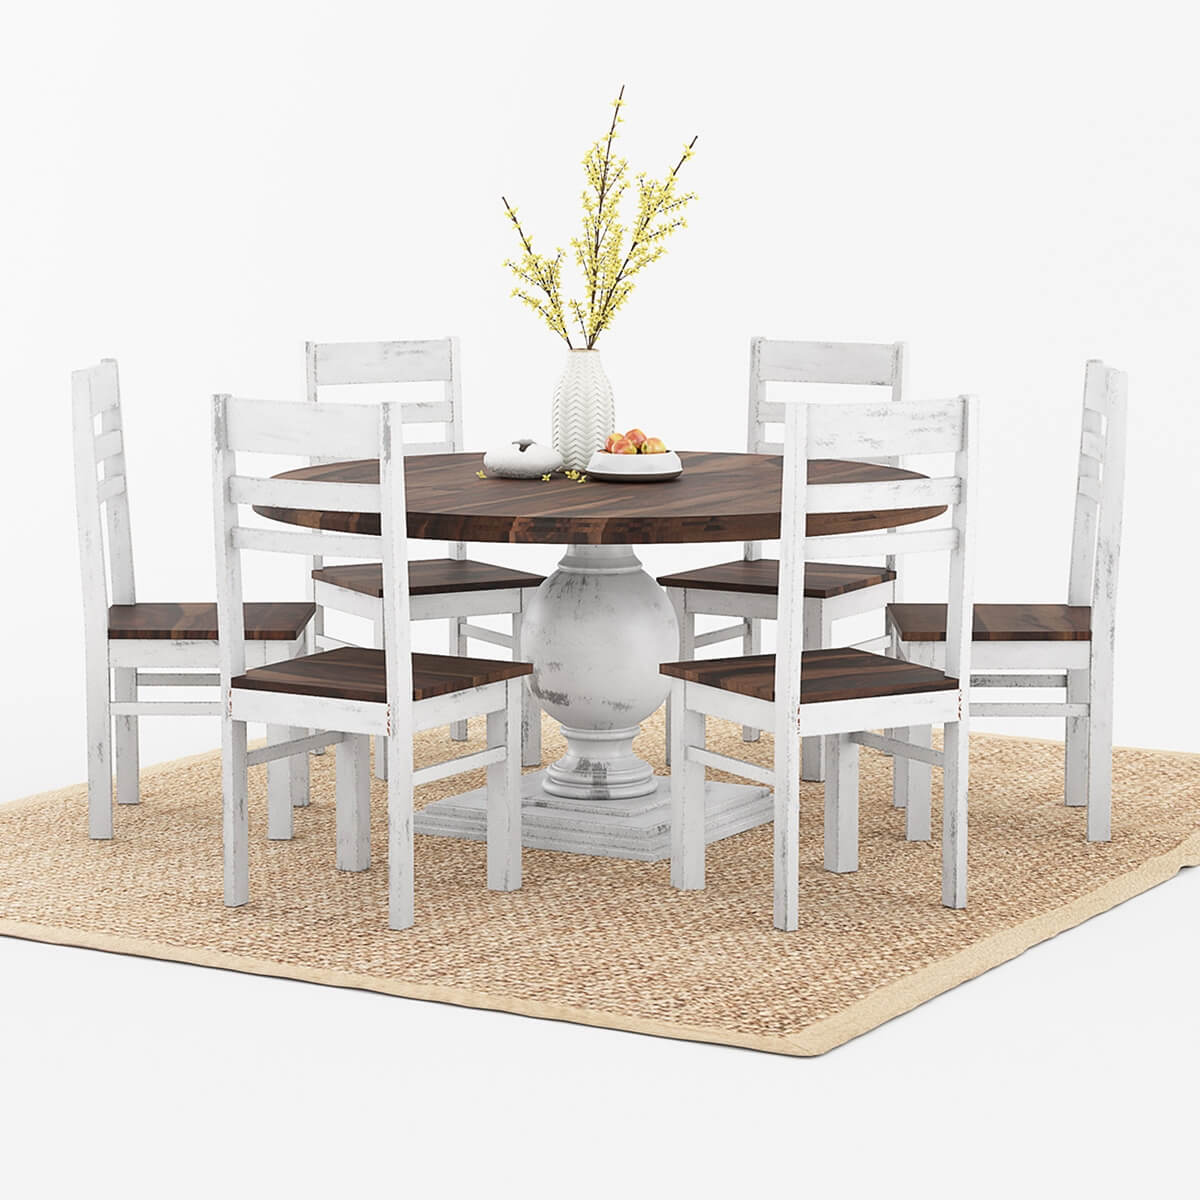 Two Chair Dining Table Set: Illinois Modern Two Tone Large Round Dining Table With 8